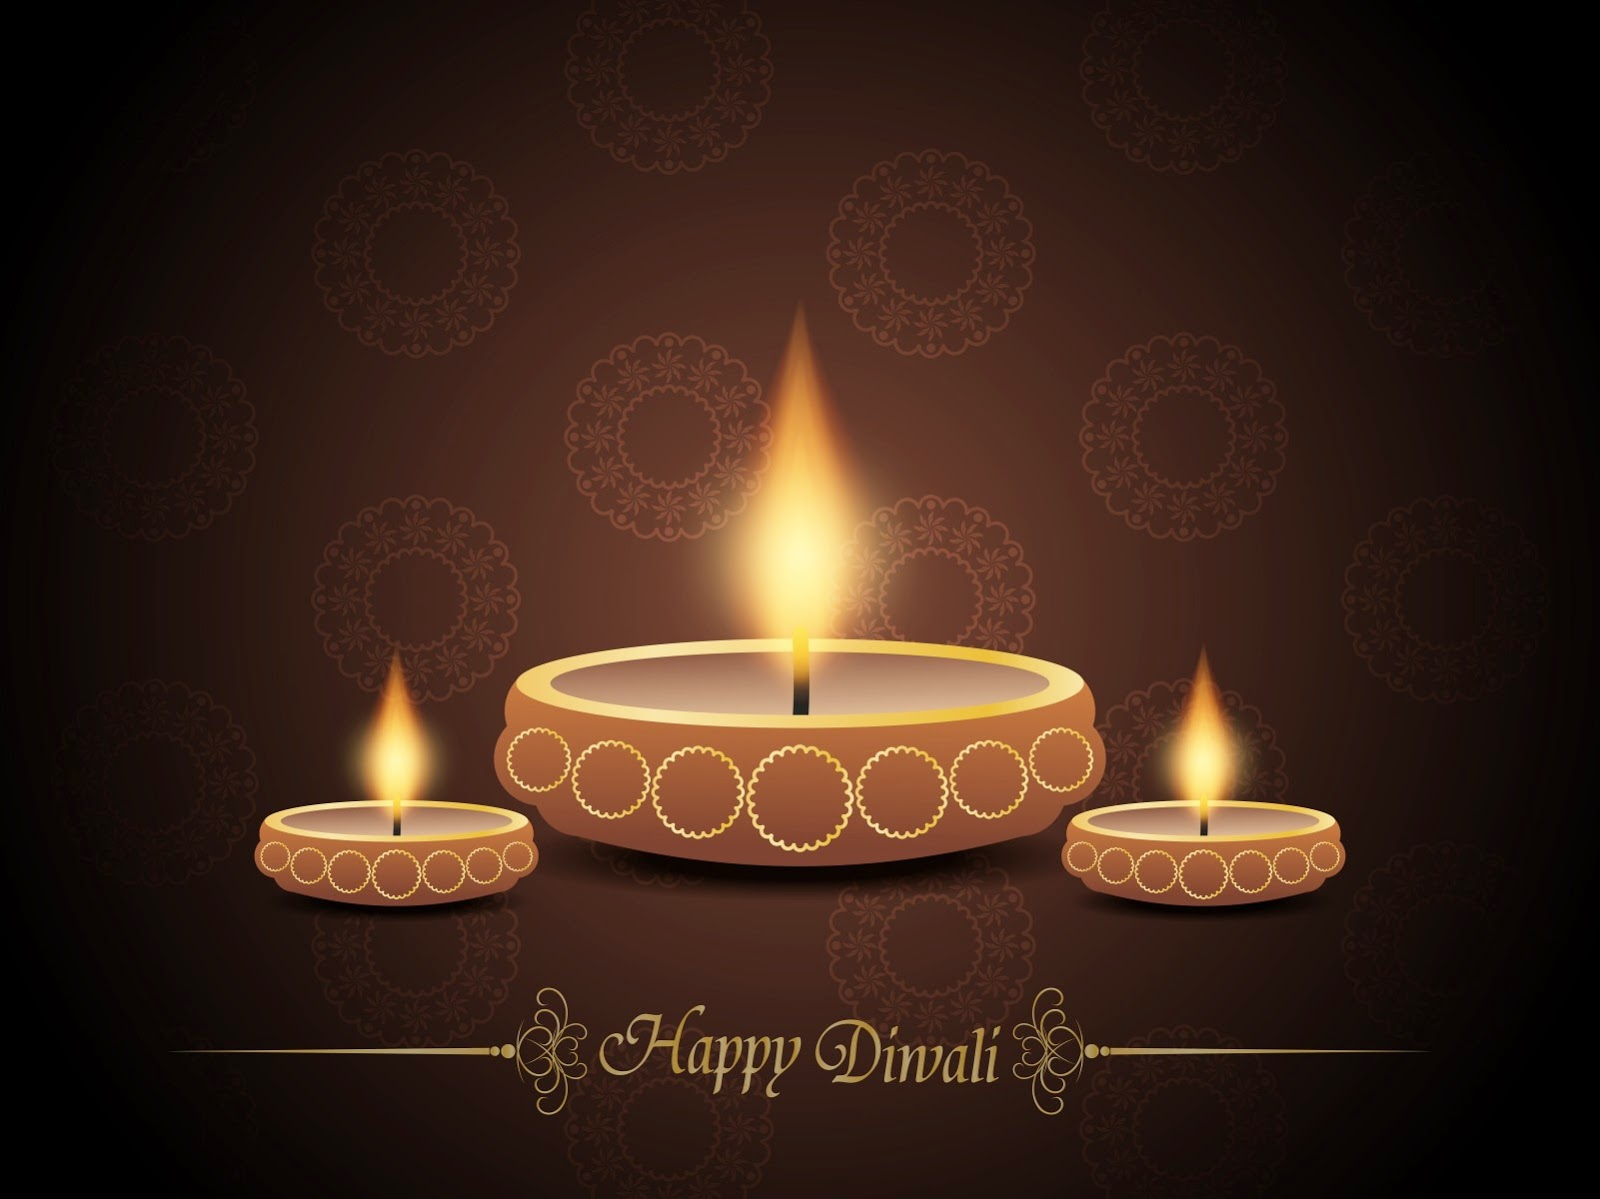 Top 100 happydeepavali diwali images wallpapers pictures happy diwali 2018 images m4hsunfo